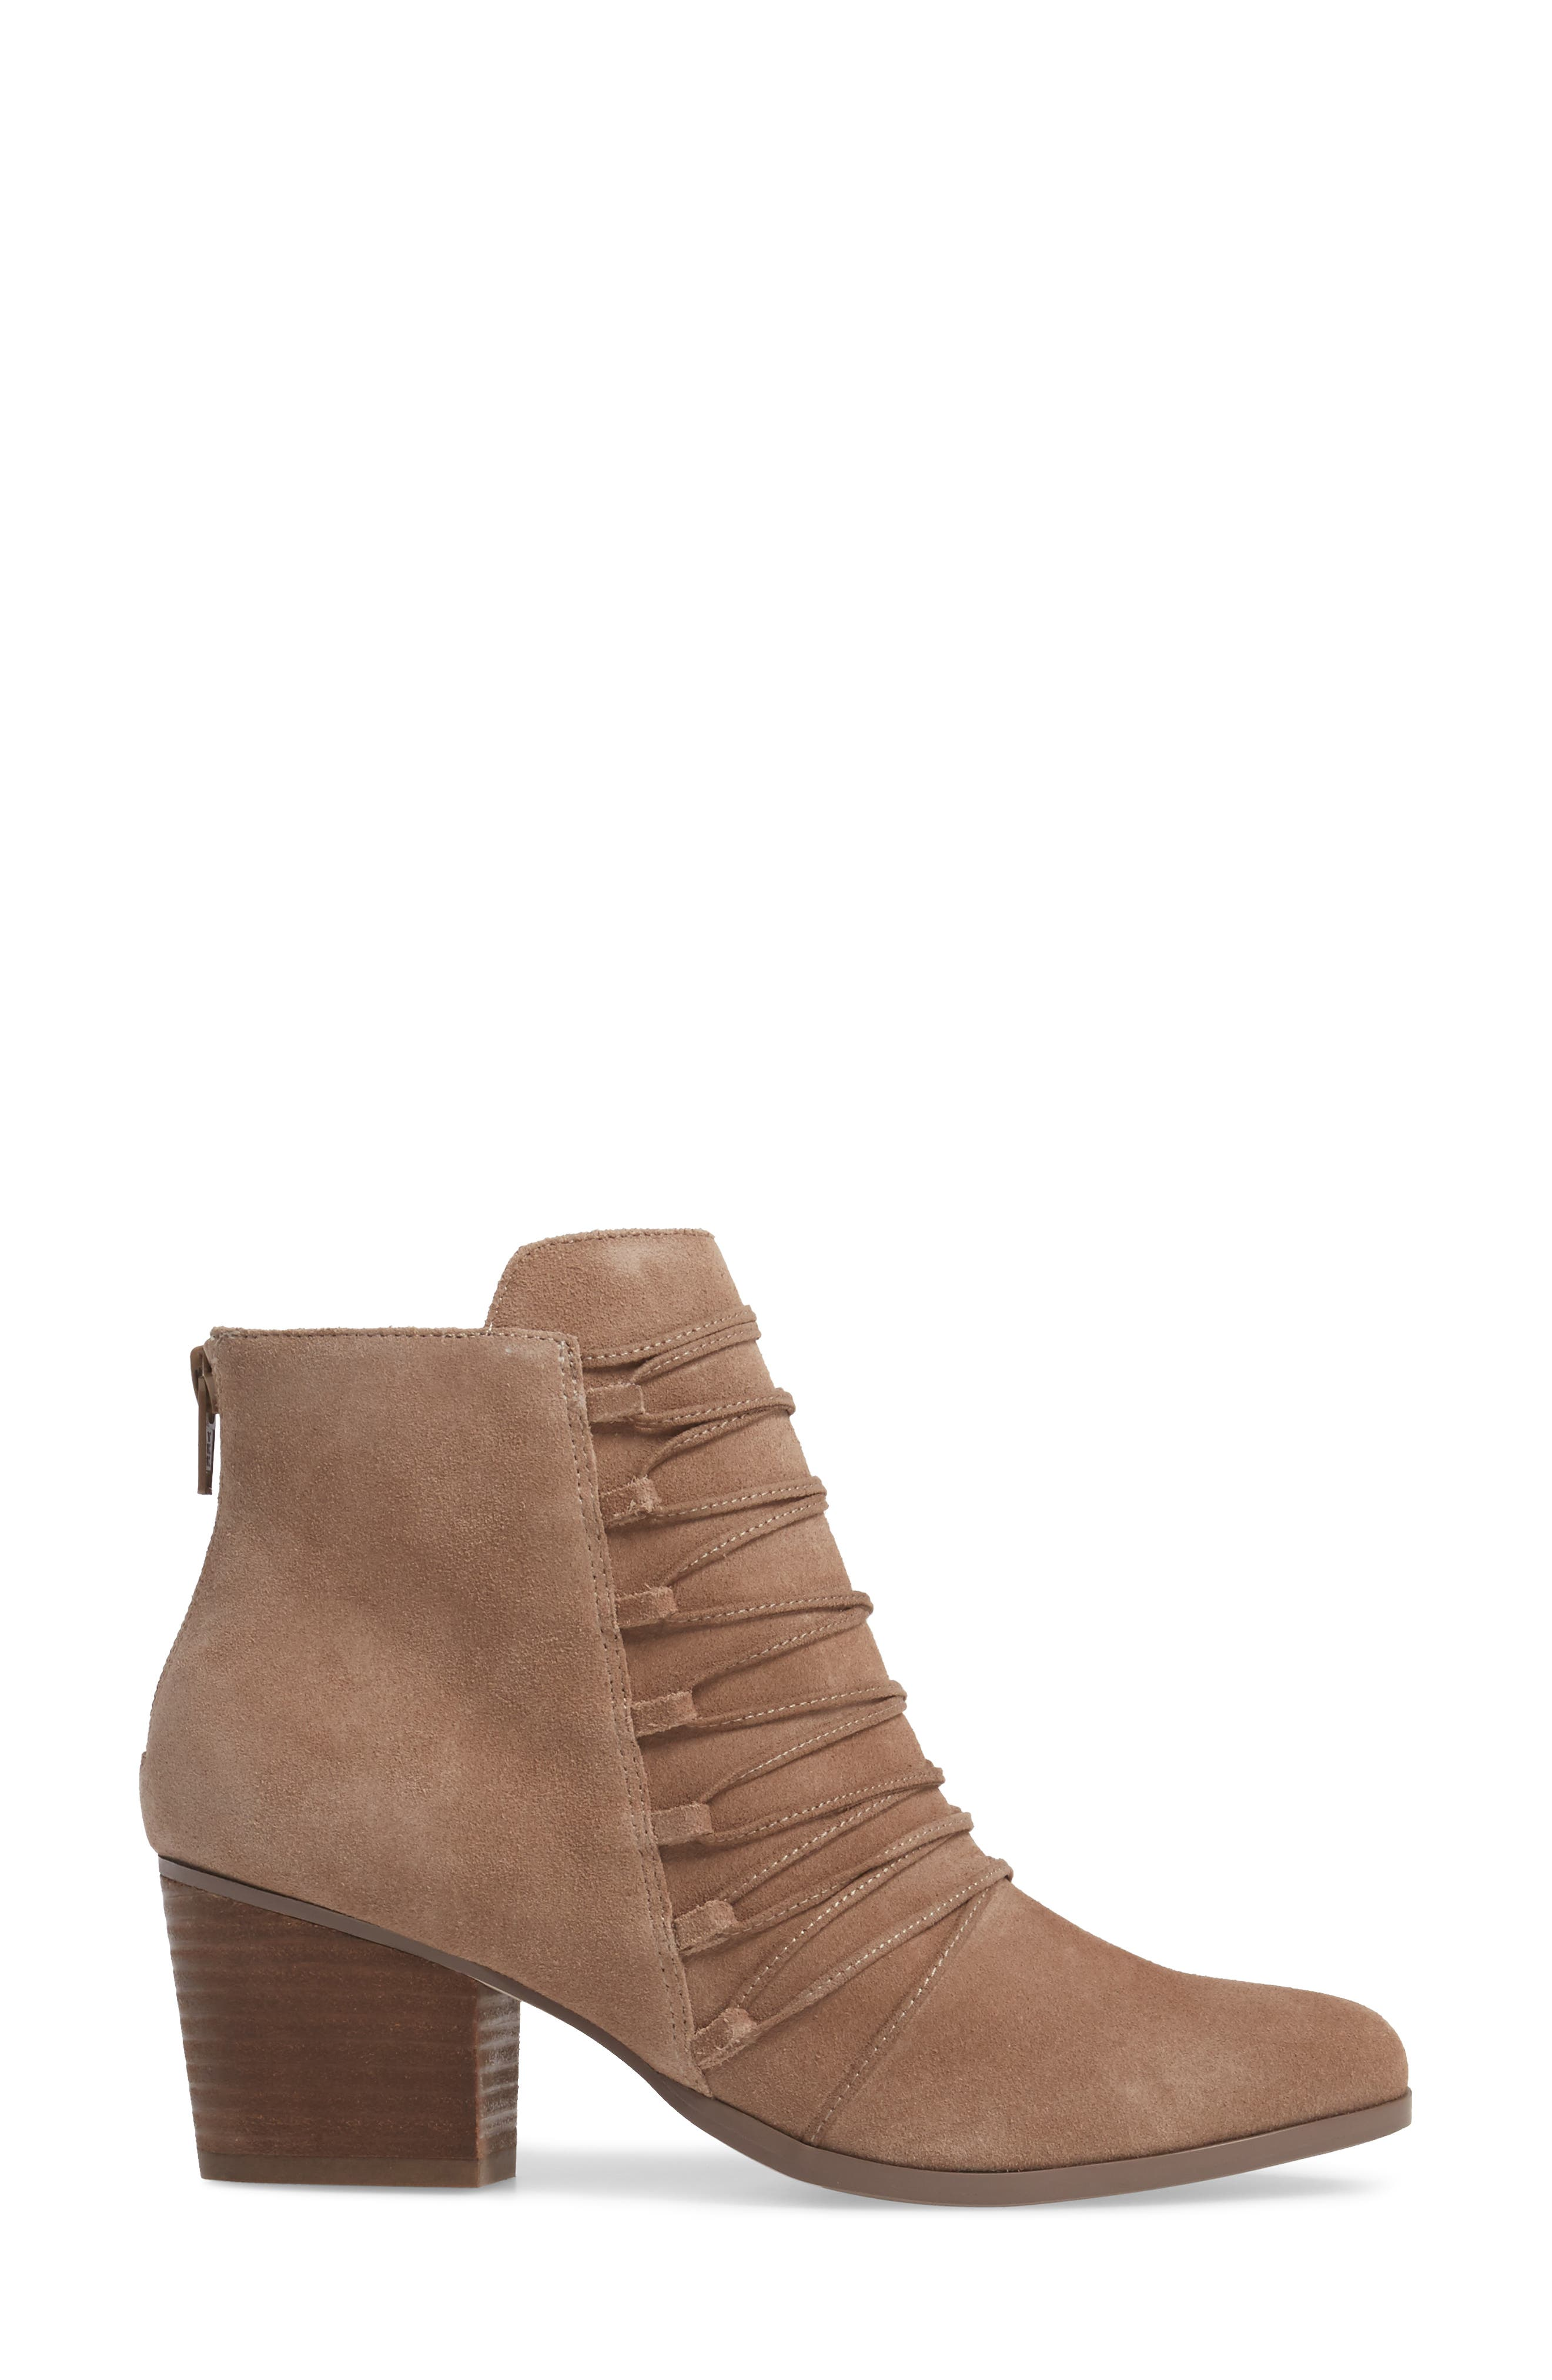 Bellevue Bootie,                             Alternate thumbnail 3, color,                             Night Taupe Suede